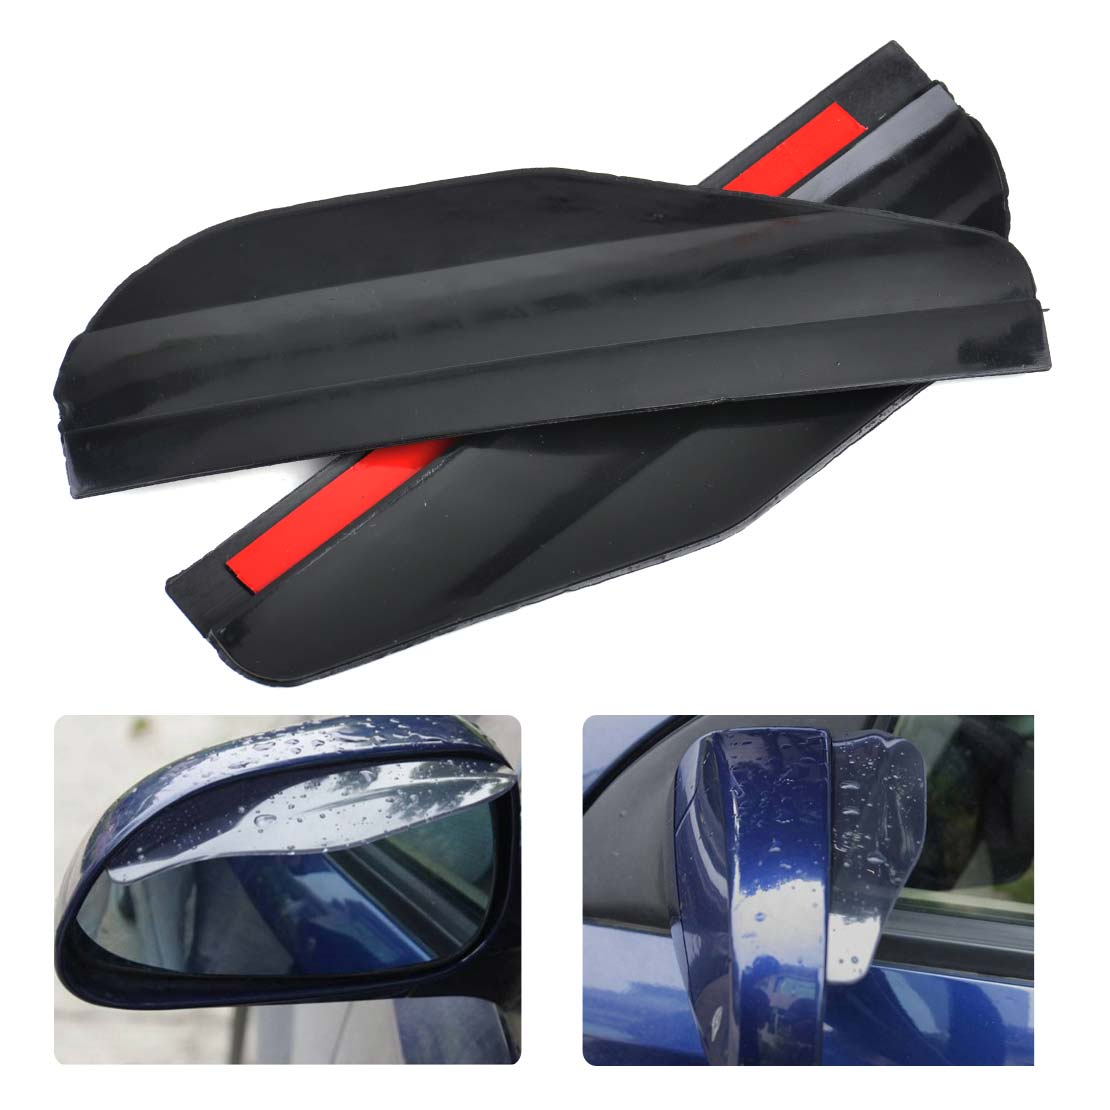 beler New 2pcs Acrylic Auto Black Flexible Rearview Side Mirror Cover Protector Car Styling Water Rain Sun Guard Visor Shield